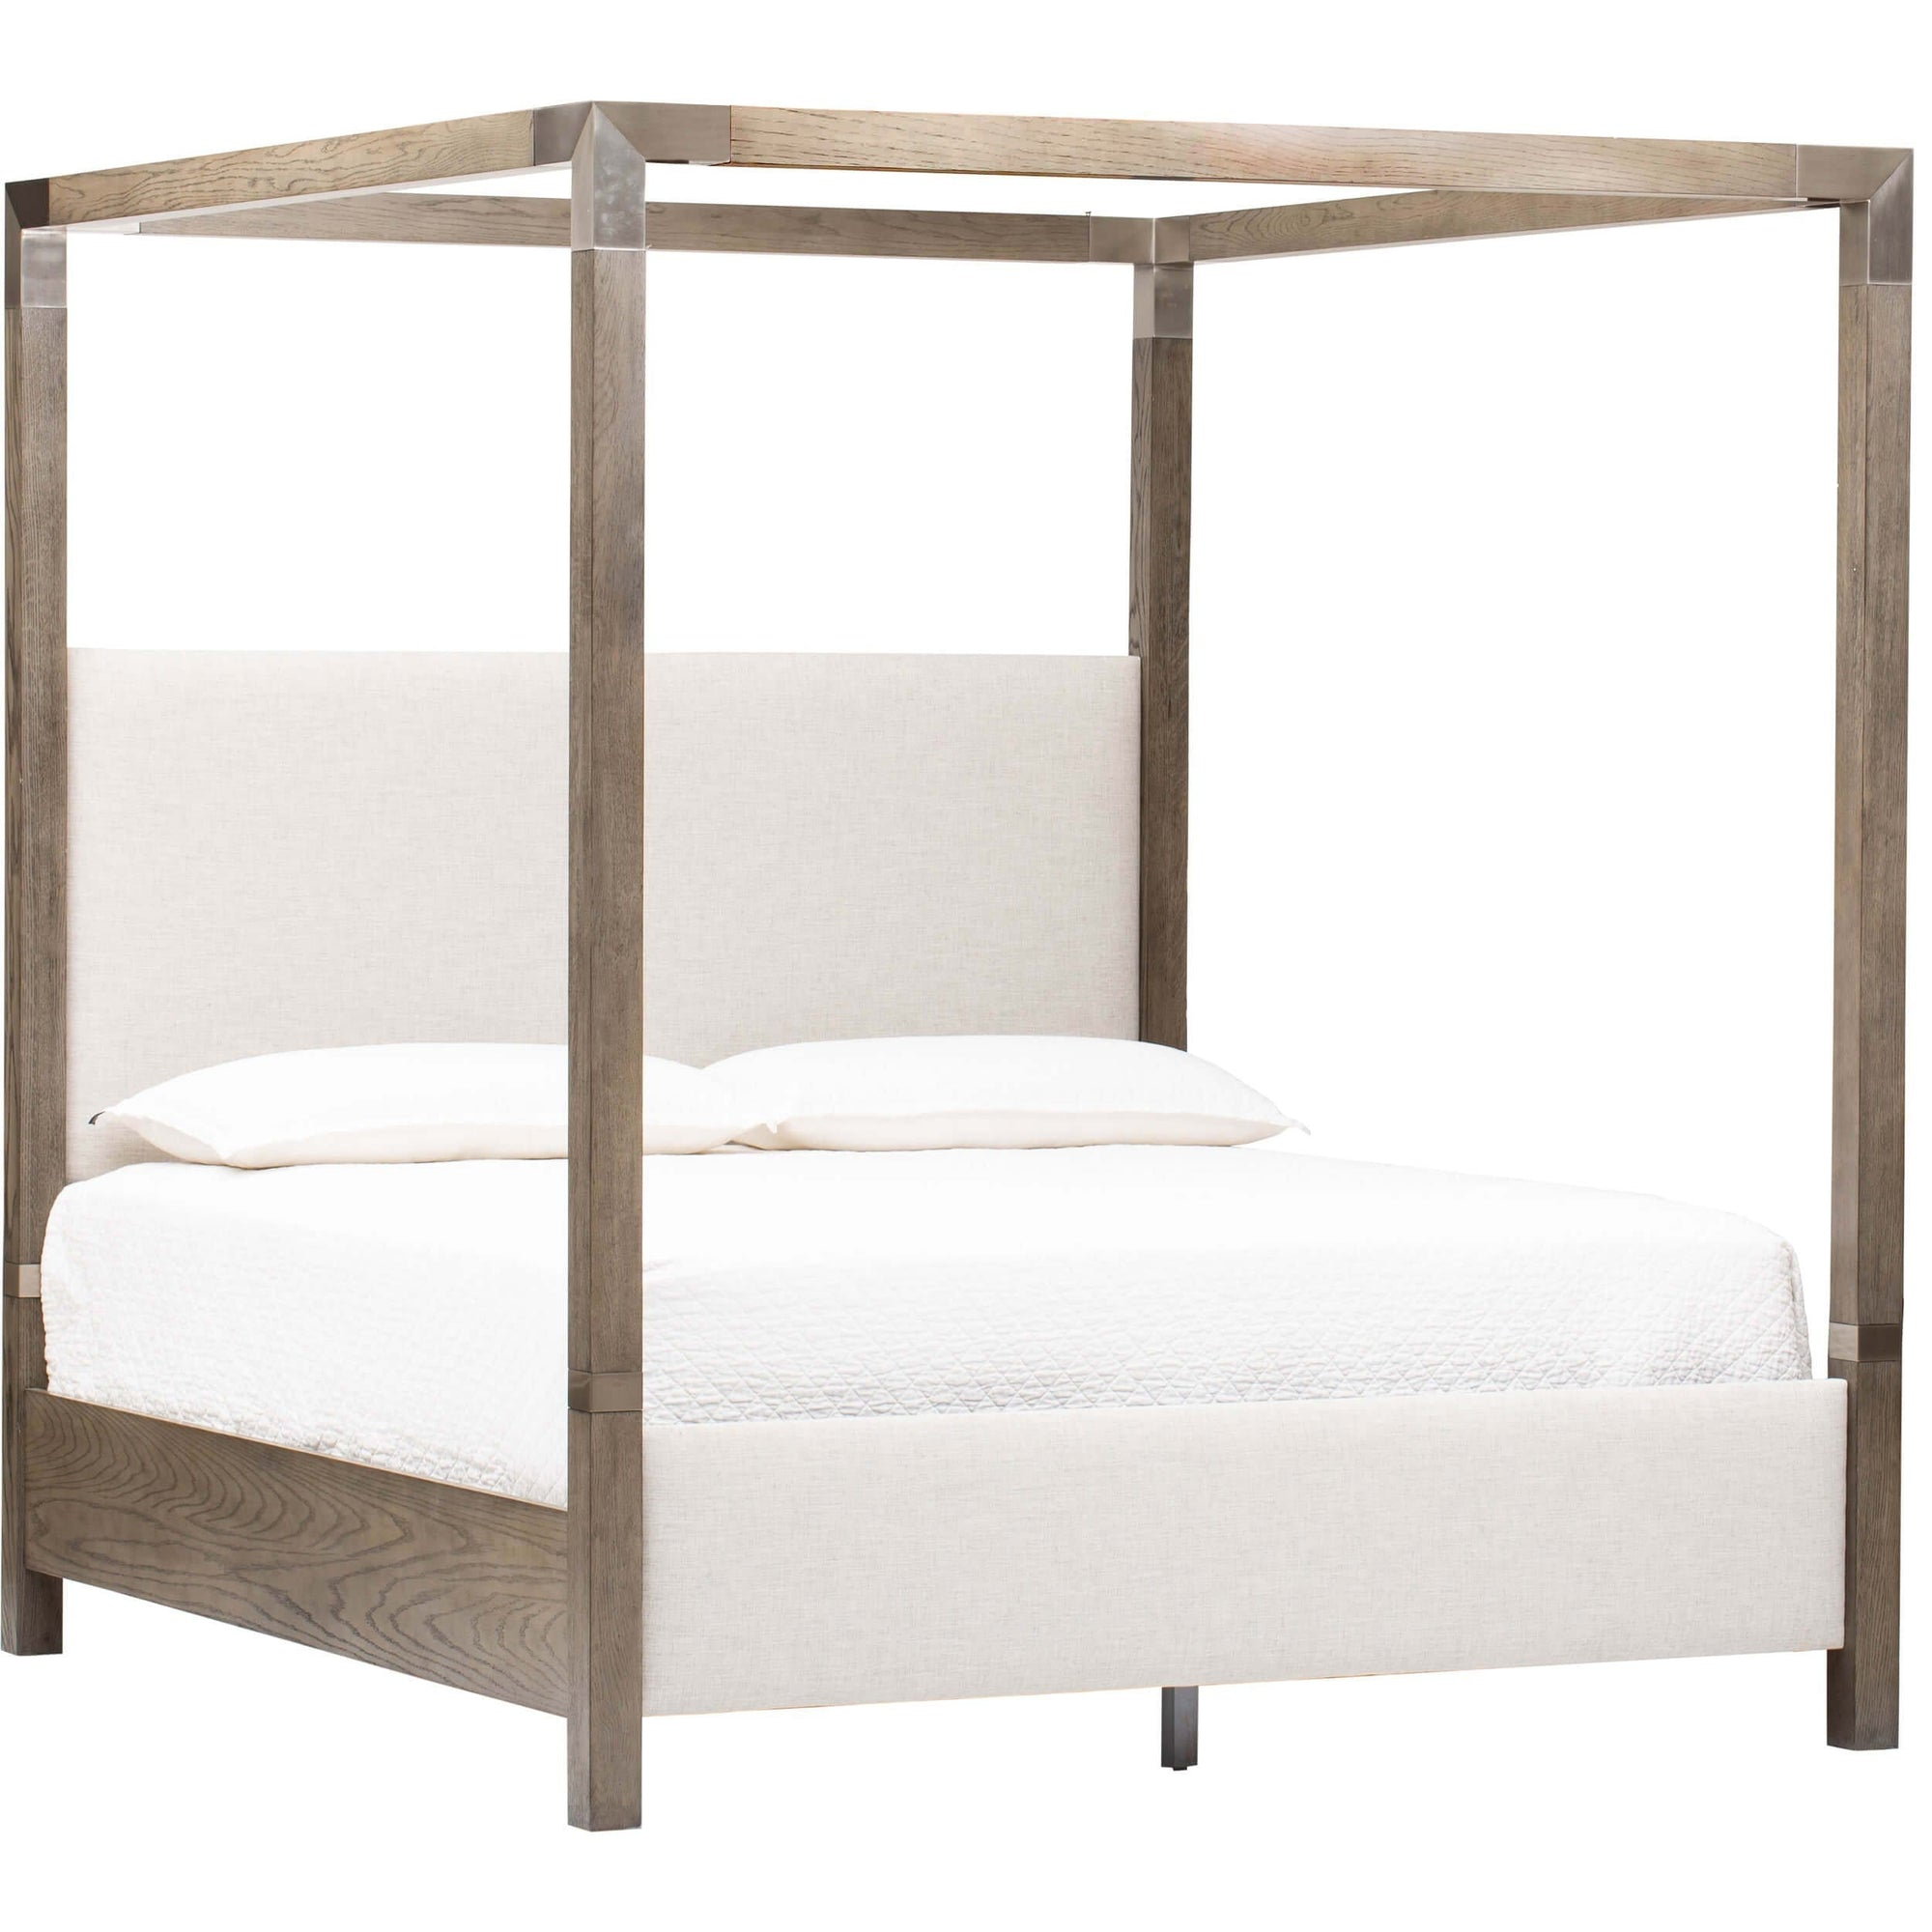 Palma Upholstered Canopy King Bed High Fashion Home